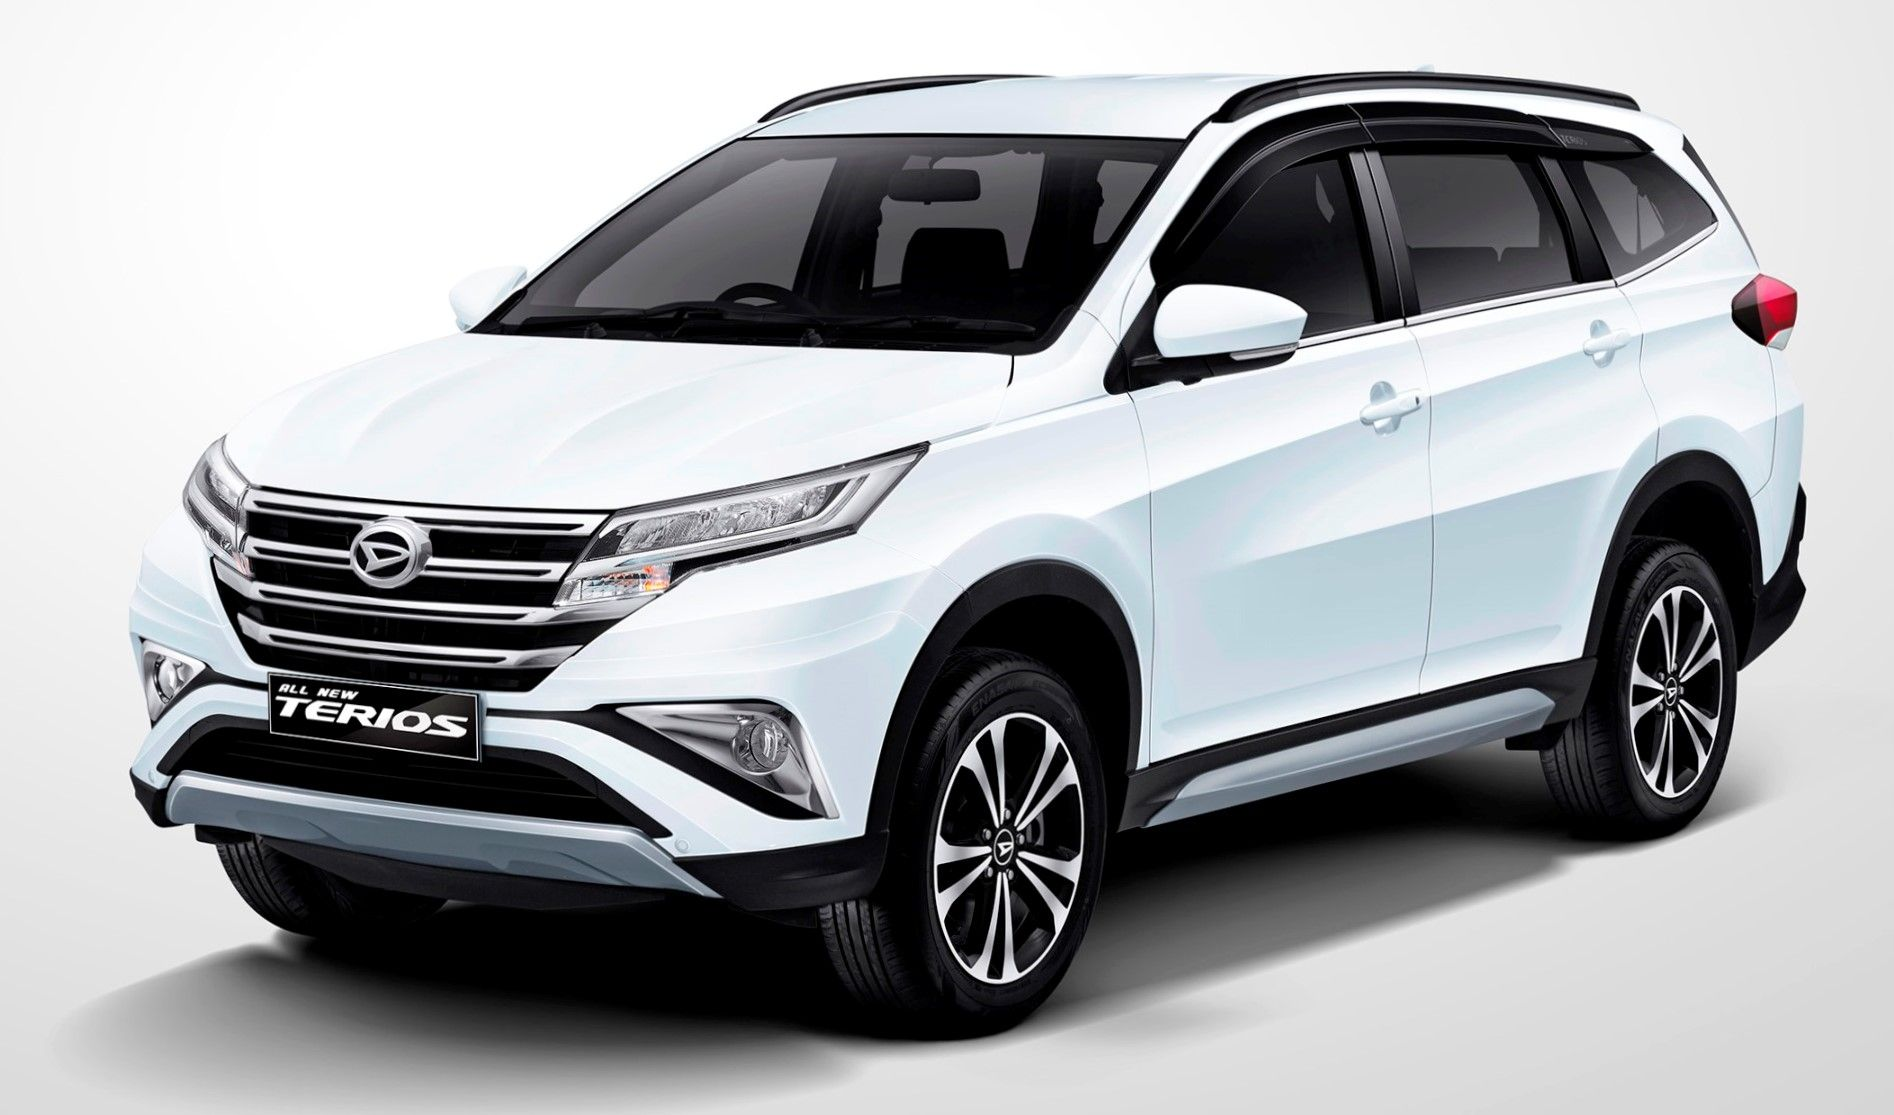 Suv Car Wallpapers In 2020 Daihatsu Toyota Toyota Cars